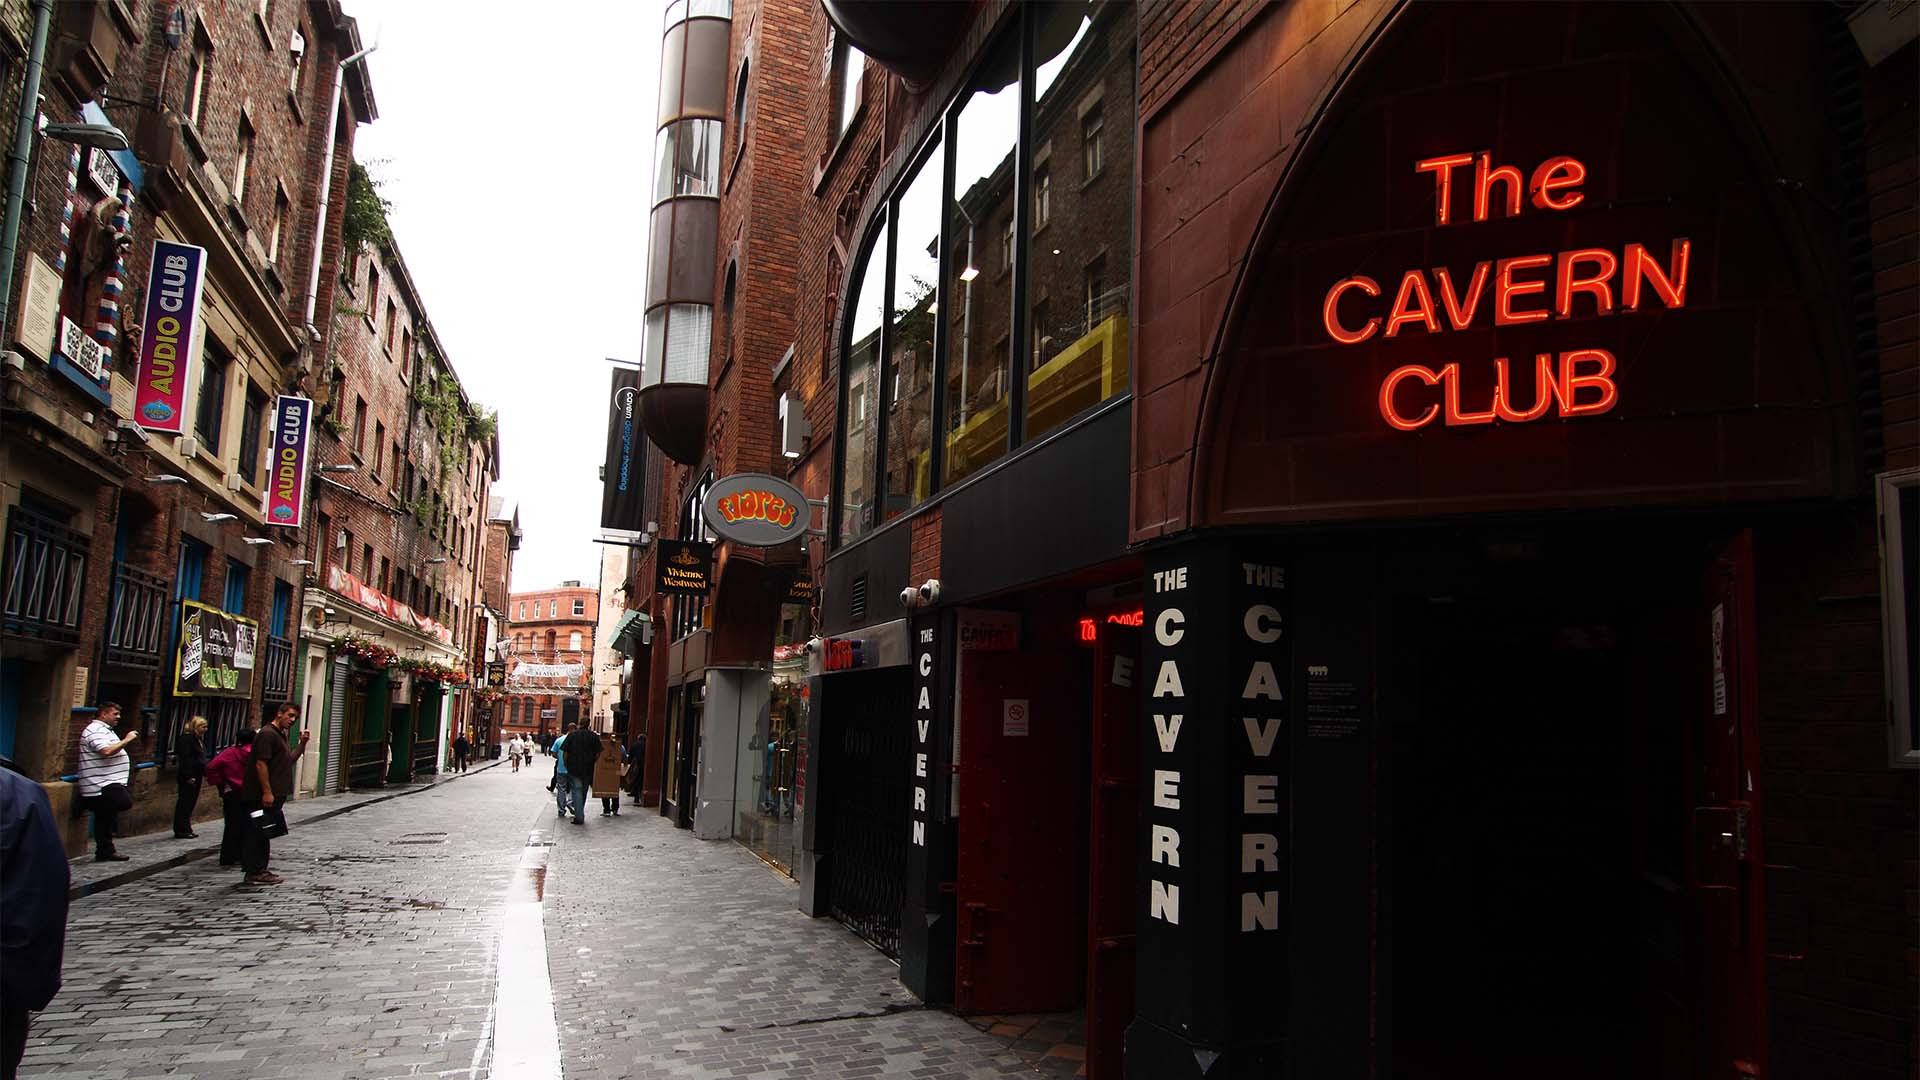 Pictures of the cavern club liverpool Tesco is selling massive multipacks of pink gin